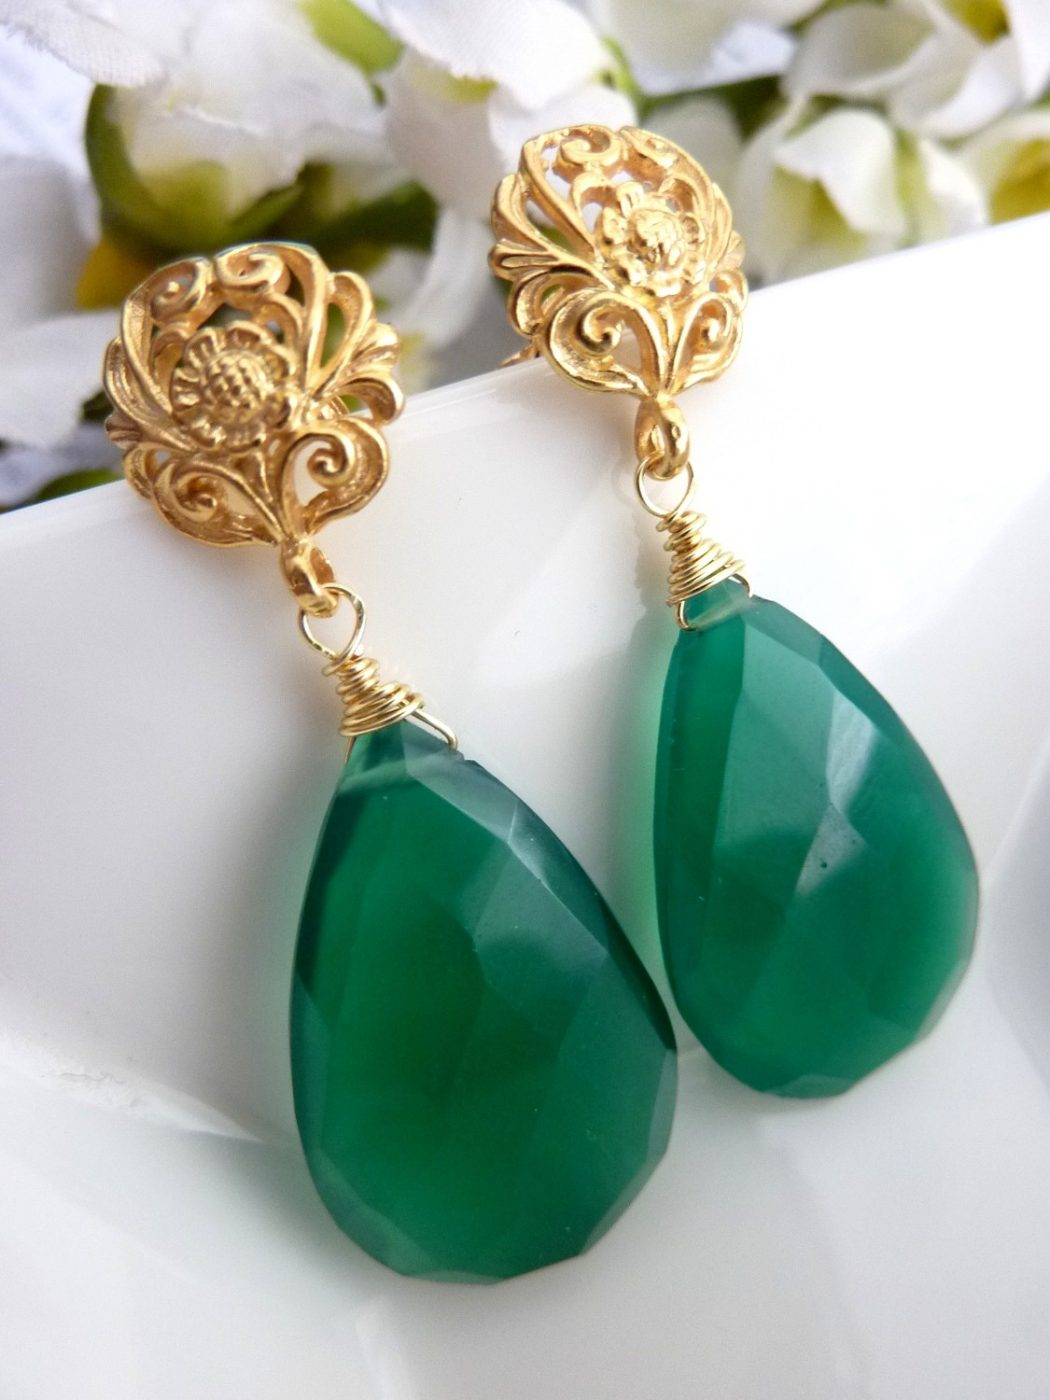 JCGemsJewelry-18-Karat-Gold-Vermeil-Emerald-Green-Onyx-Earrings-inpsied-by-Angelina-Jolie Best 30 Inspiring Jewelry Designs